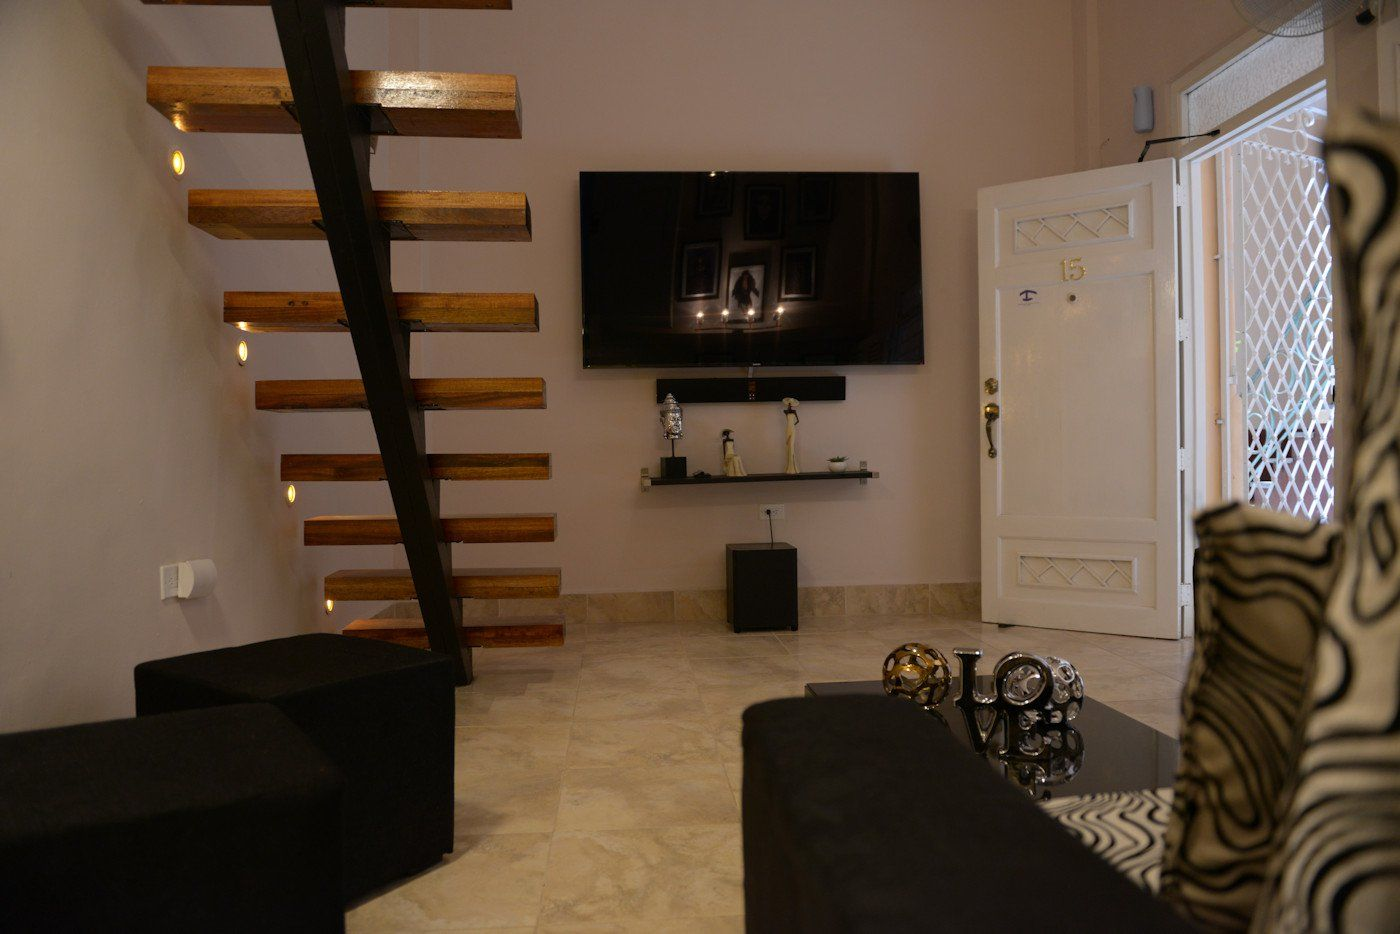 Beautiful And Well Decorated Apartment, Ventilated And Air Conditioned. It  Has A Main Bedroom